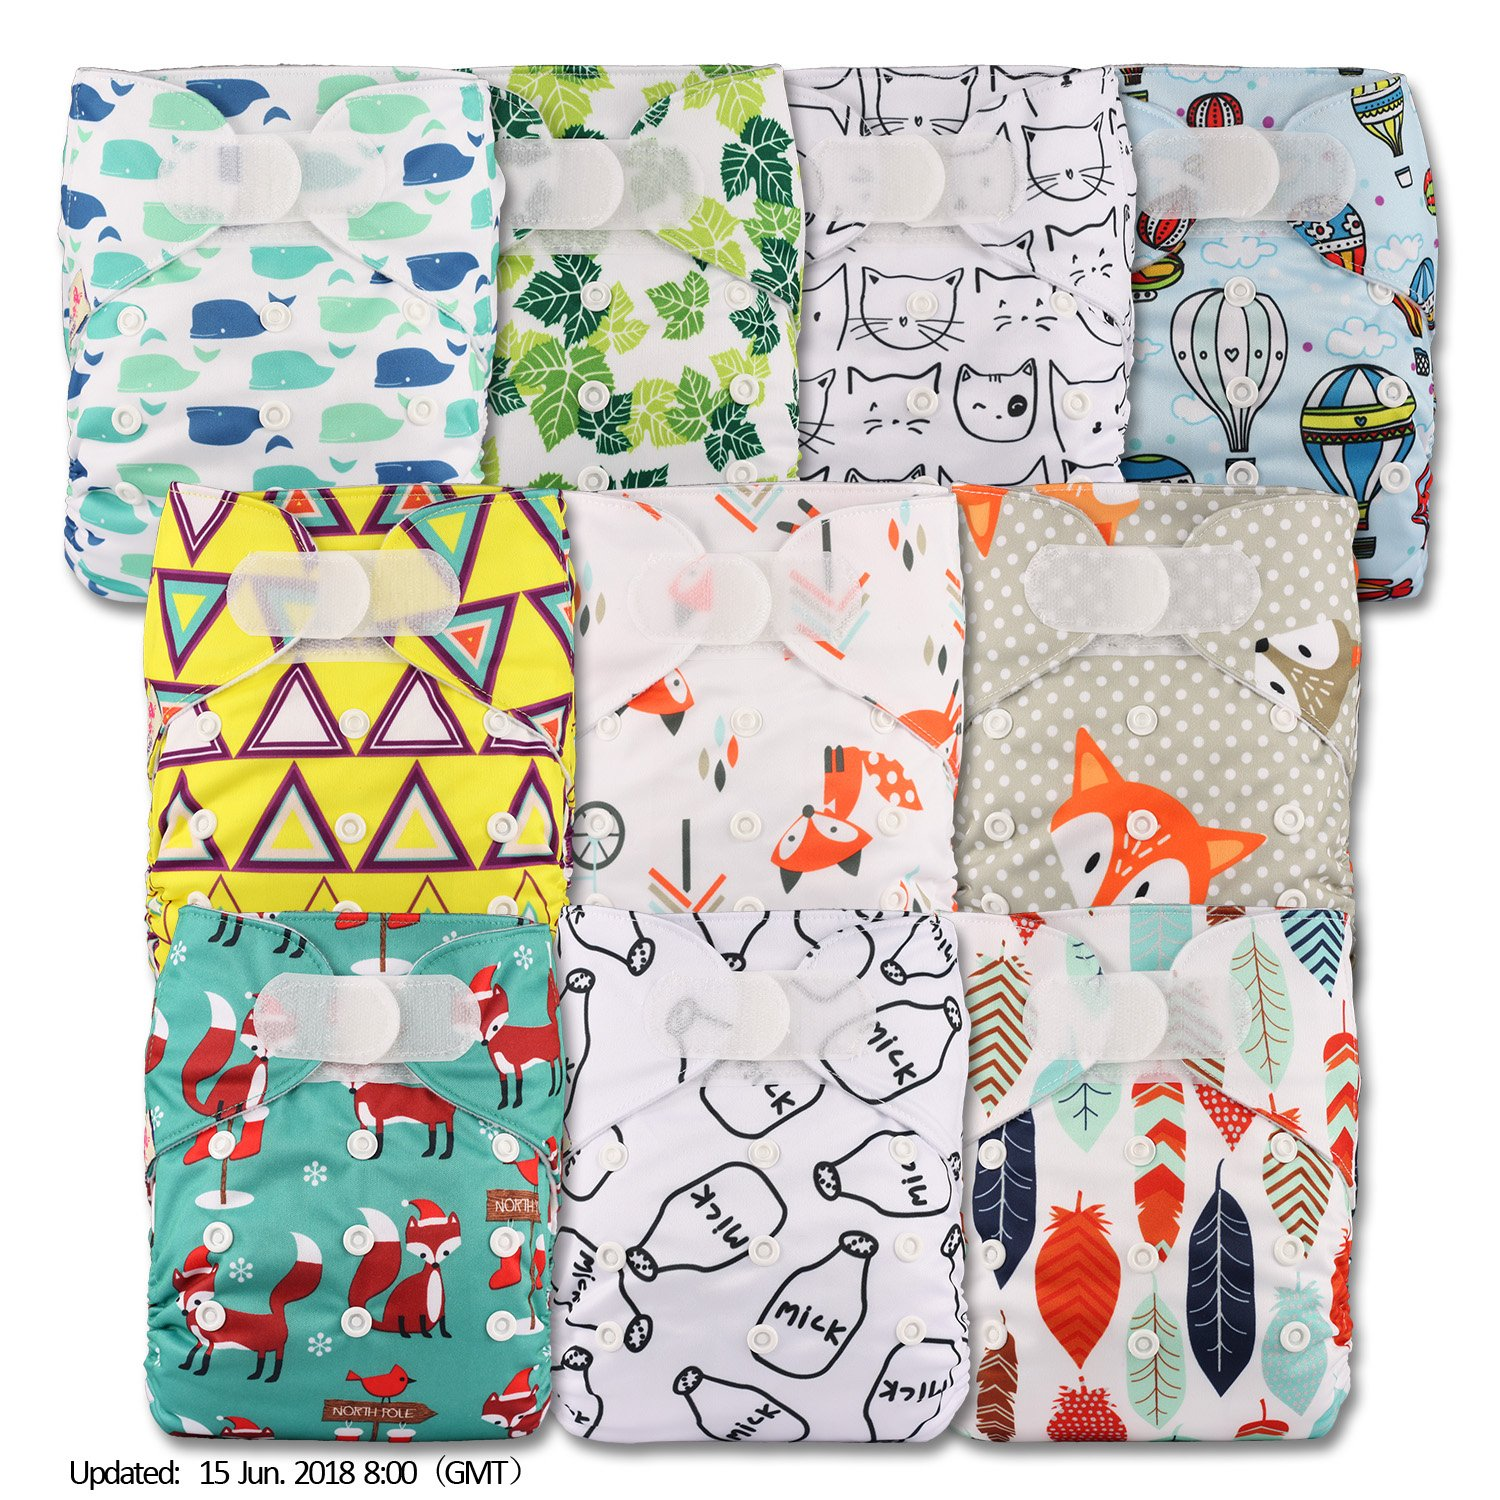 Littles & Bloomz, Reusable Pocket Cloth Nappy, Fastener: Hook-Loop, Set of 10, Patterns 1003, Without Insert